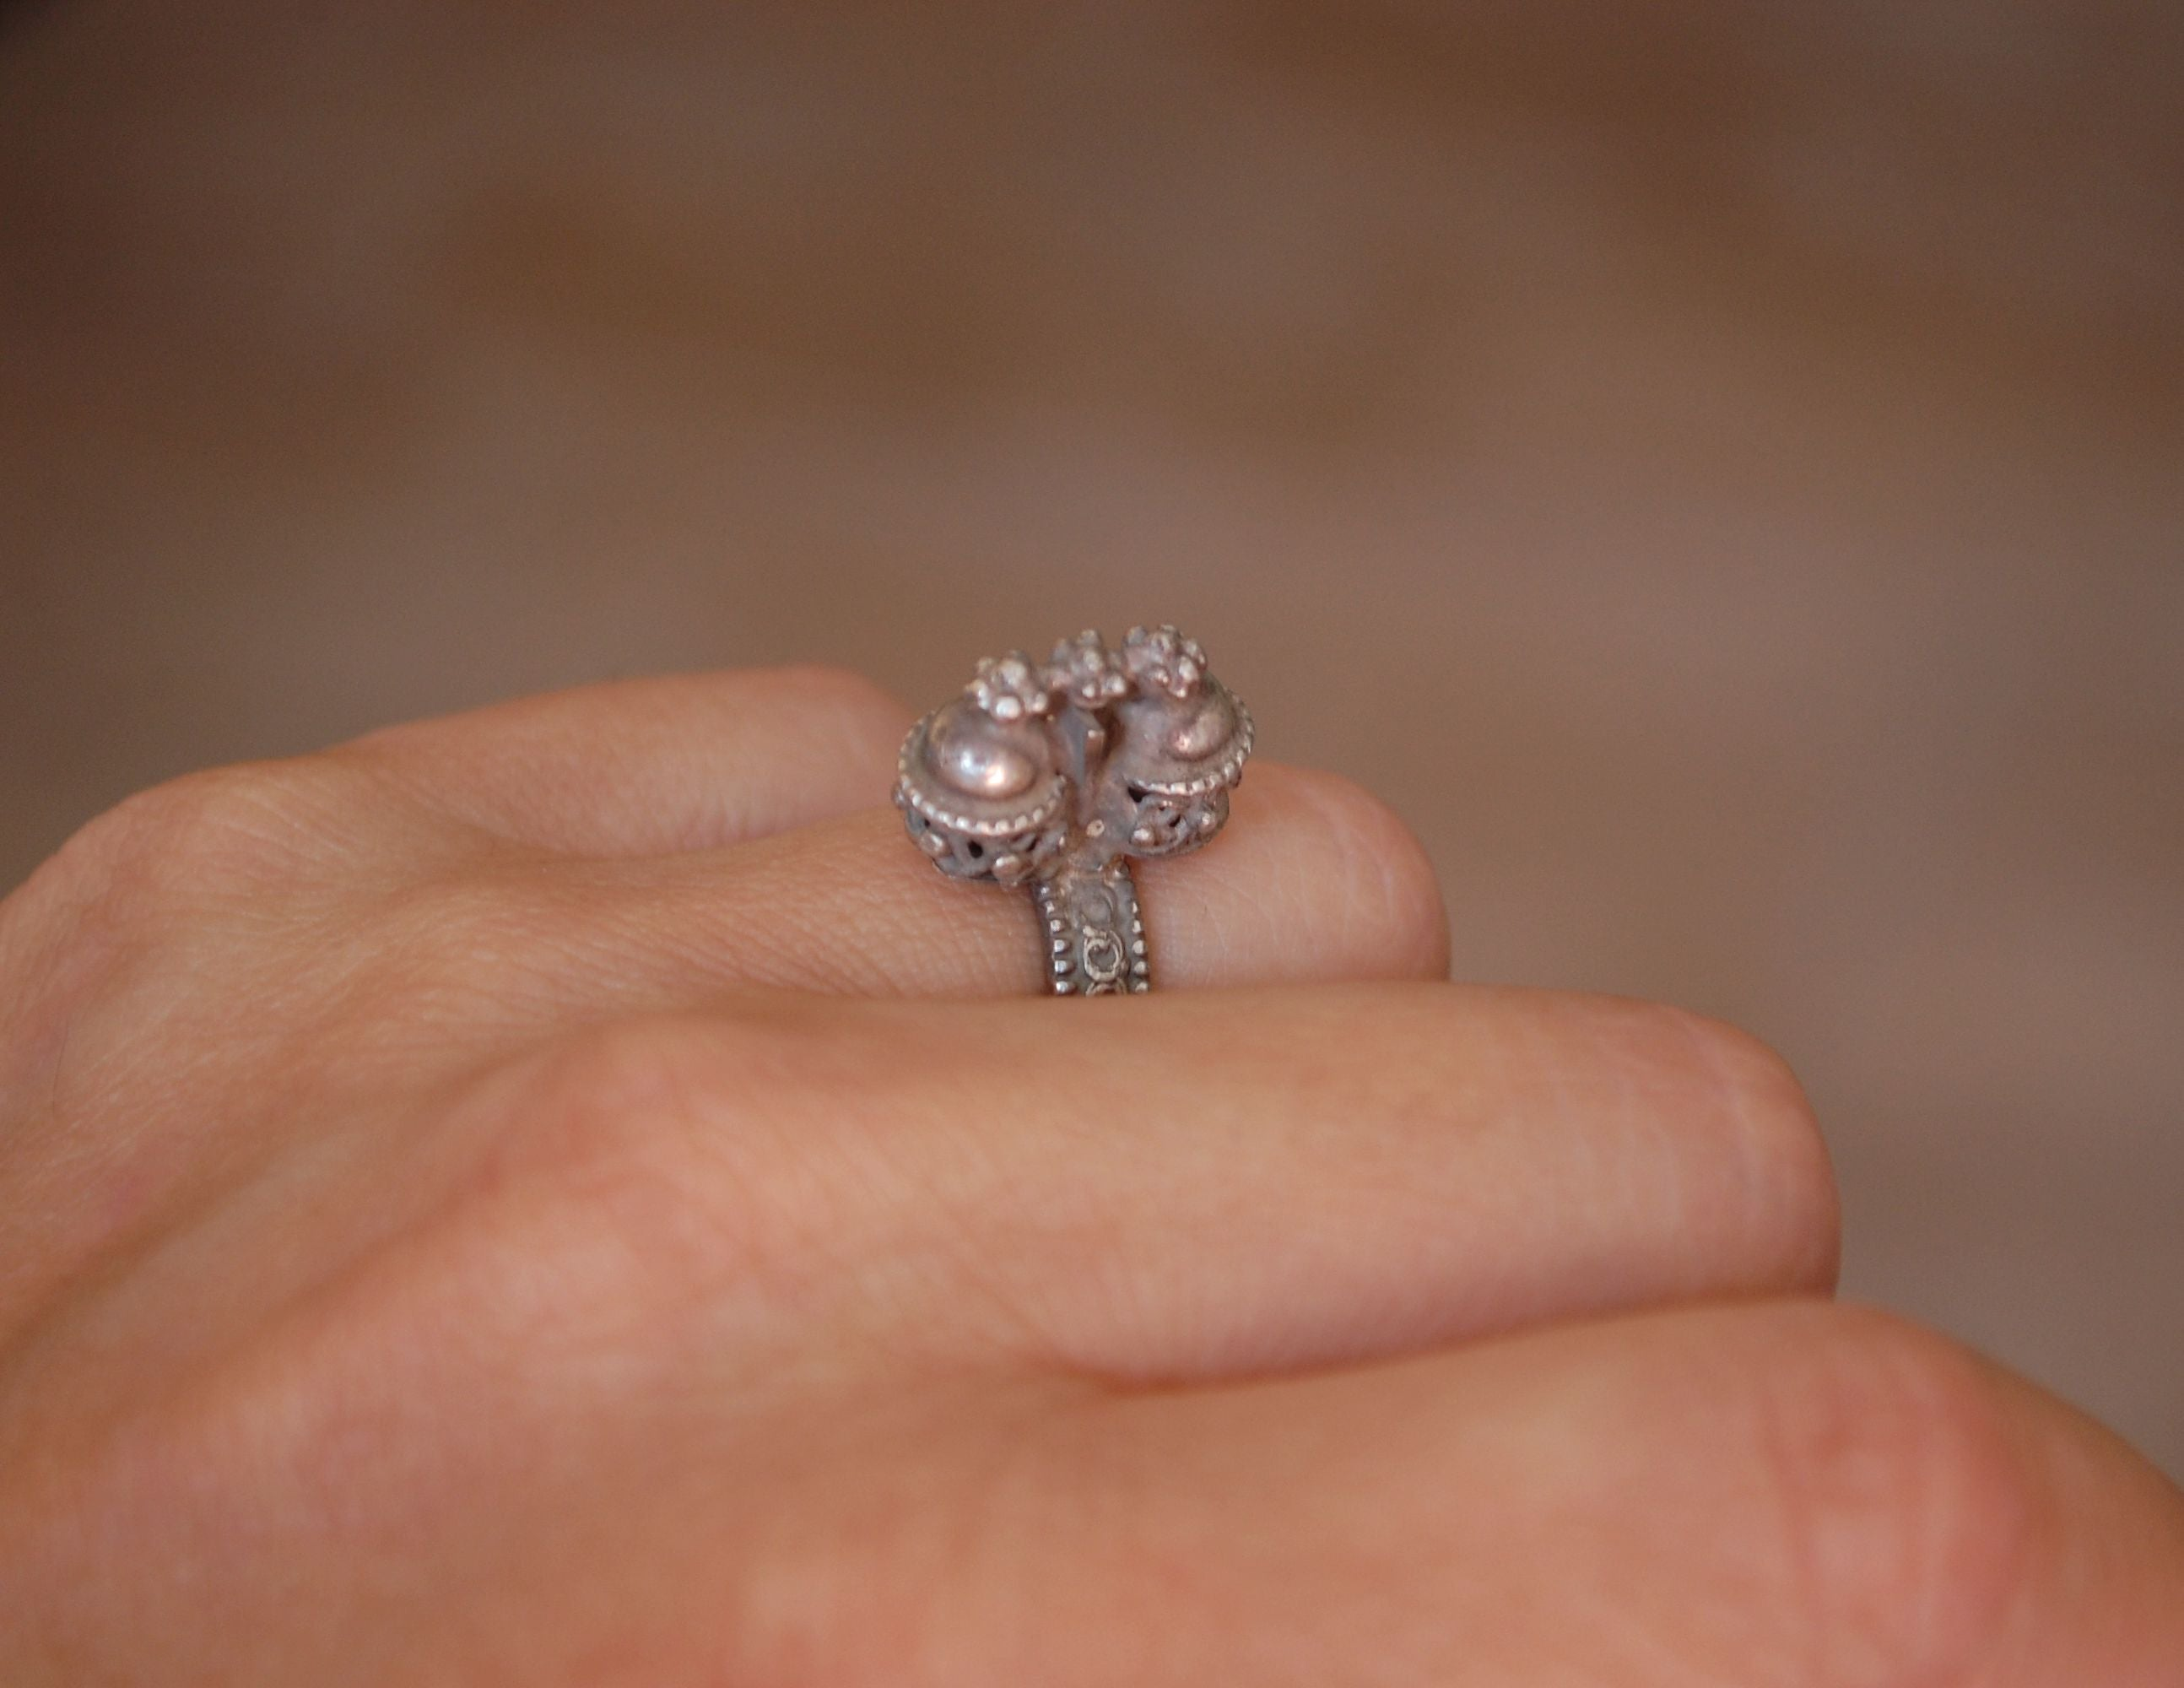 Antique Rajasthani Silver Ring - Size 5.25